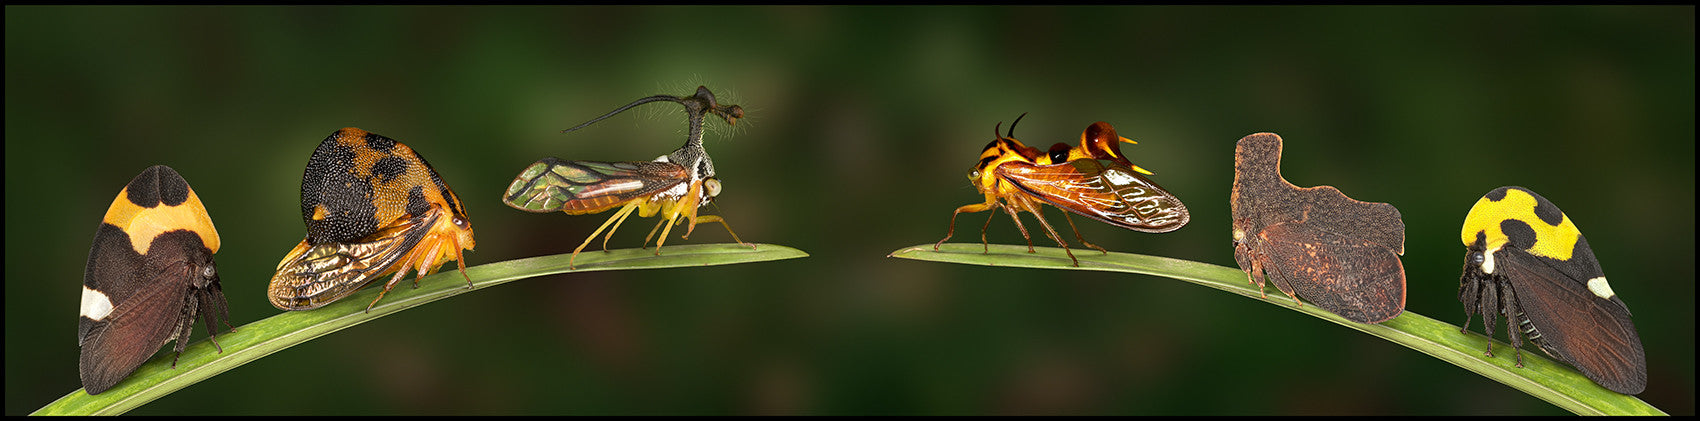 Treehopper Profile Lineup